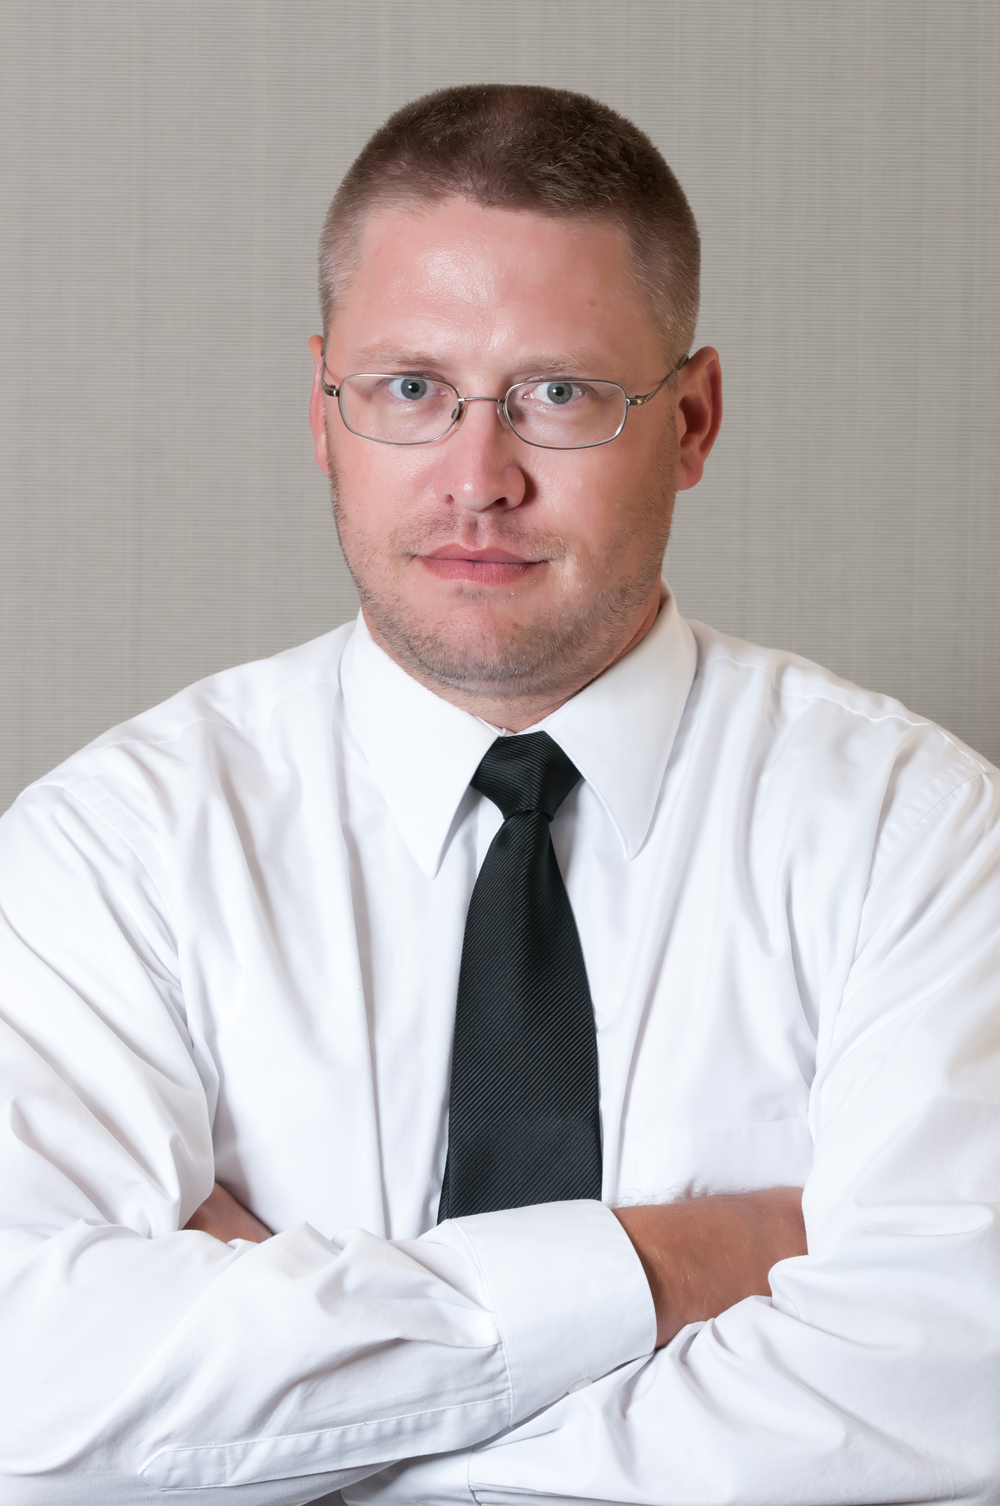 Marc Lewis  Mr. Lewis is a director of bands at Rock Bridge High School and teaches courses at Lange Middle School. To contact Mr. Lewis email  MLewis@CPSk12.org  or call 573-214-3300.